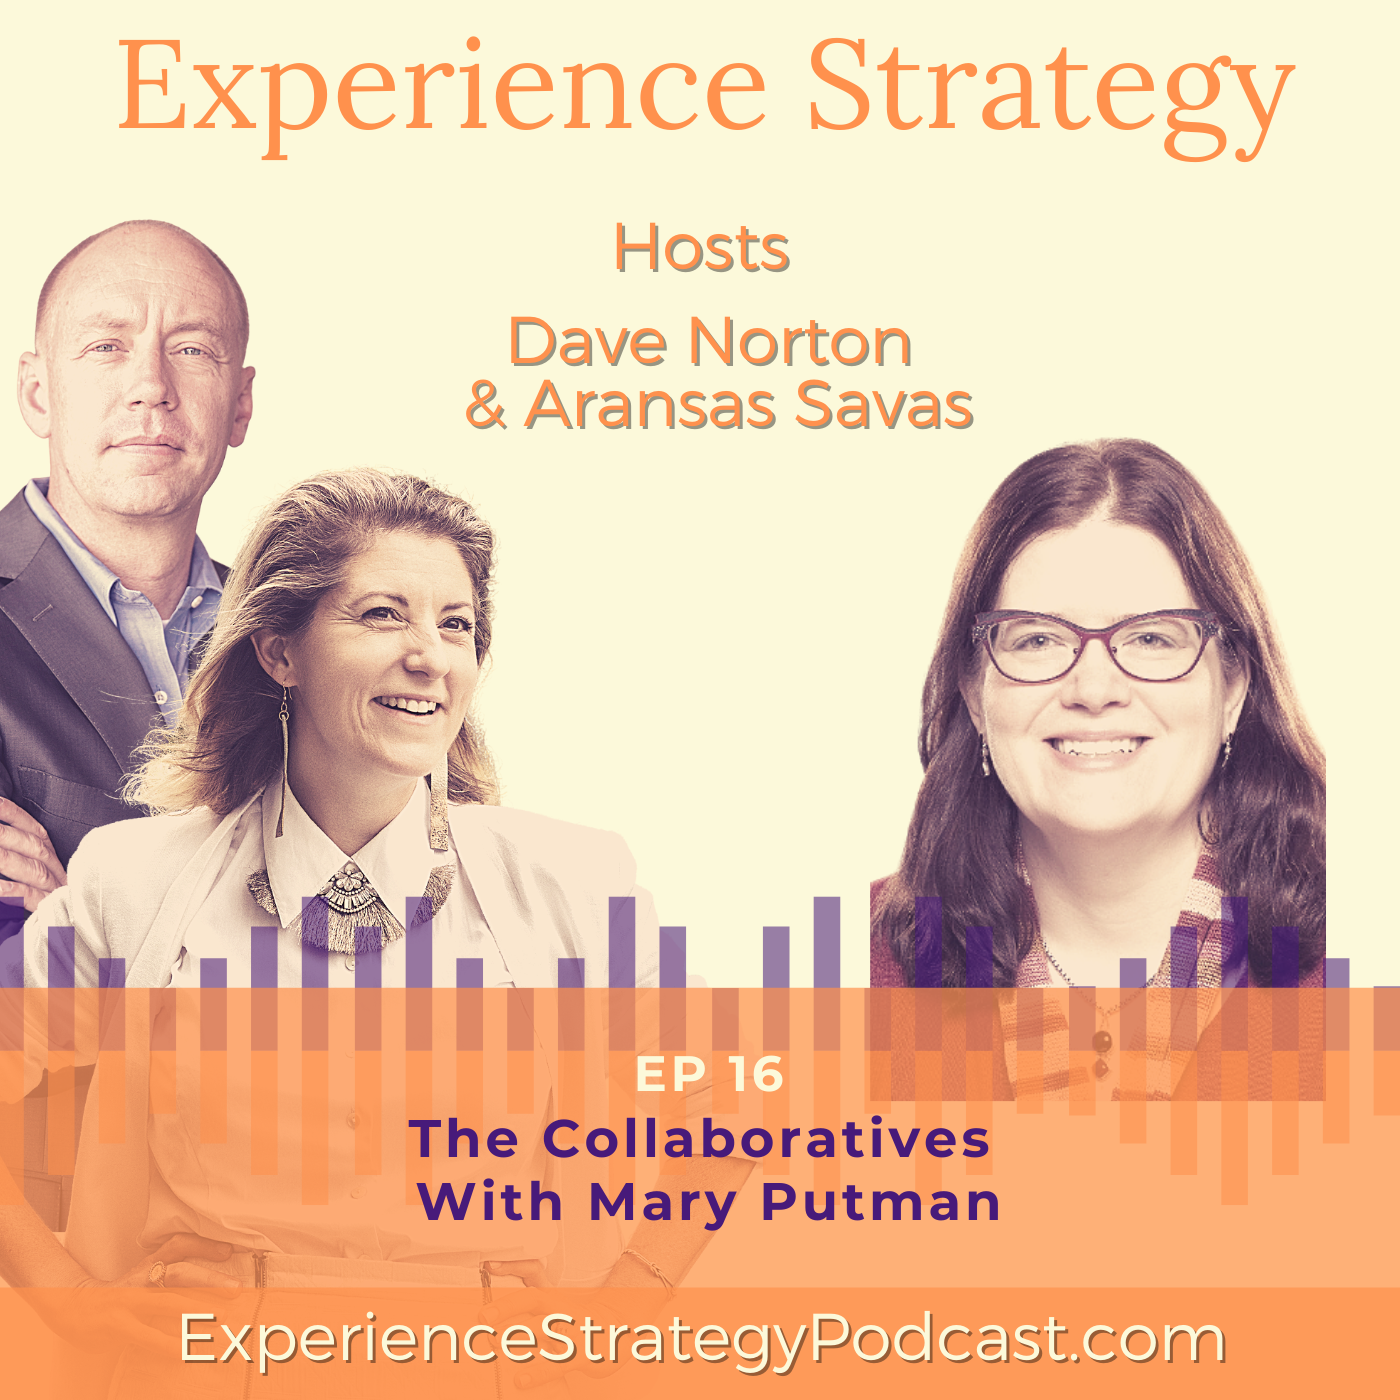 The Collaboratives With Mary Putman